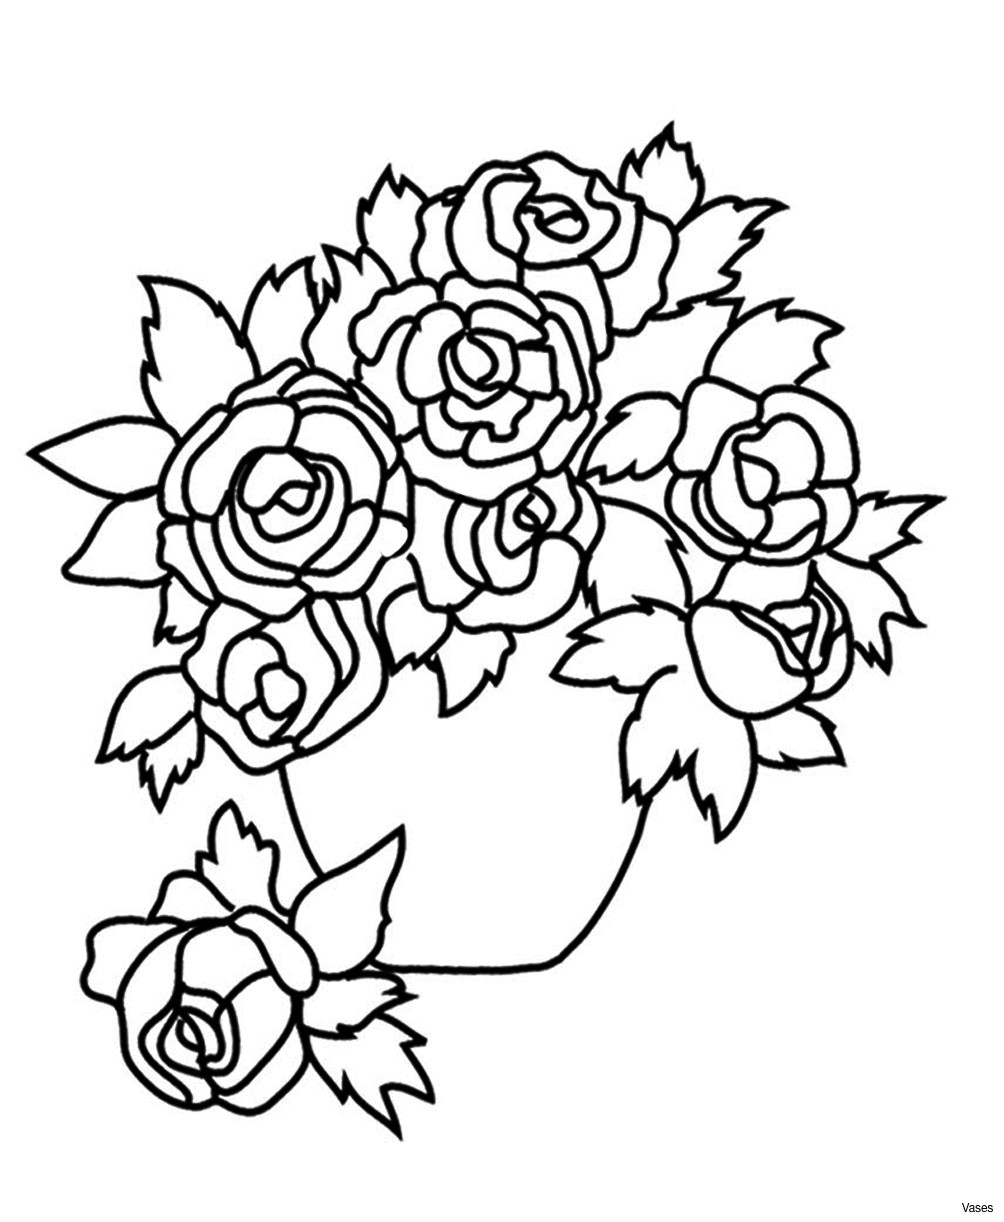 30 Popular Vase Floral Designs 2021 free download vase floral designs of awesome best vases flower vase coloring page pages flowers in a top with regard to awesome best vases flower vase coloring page pages flowers in a top i 0d